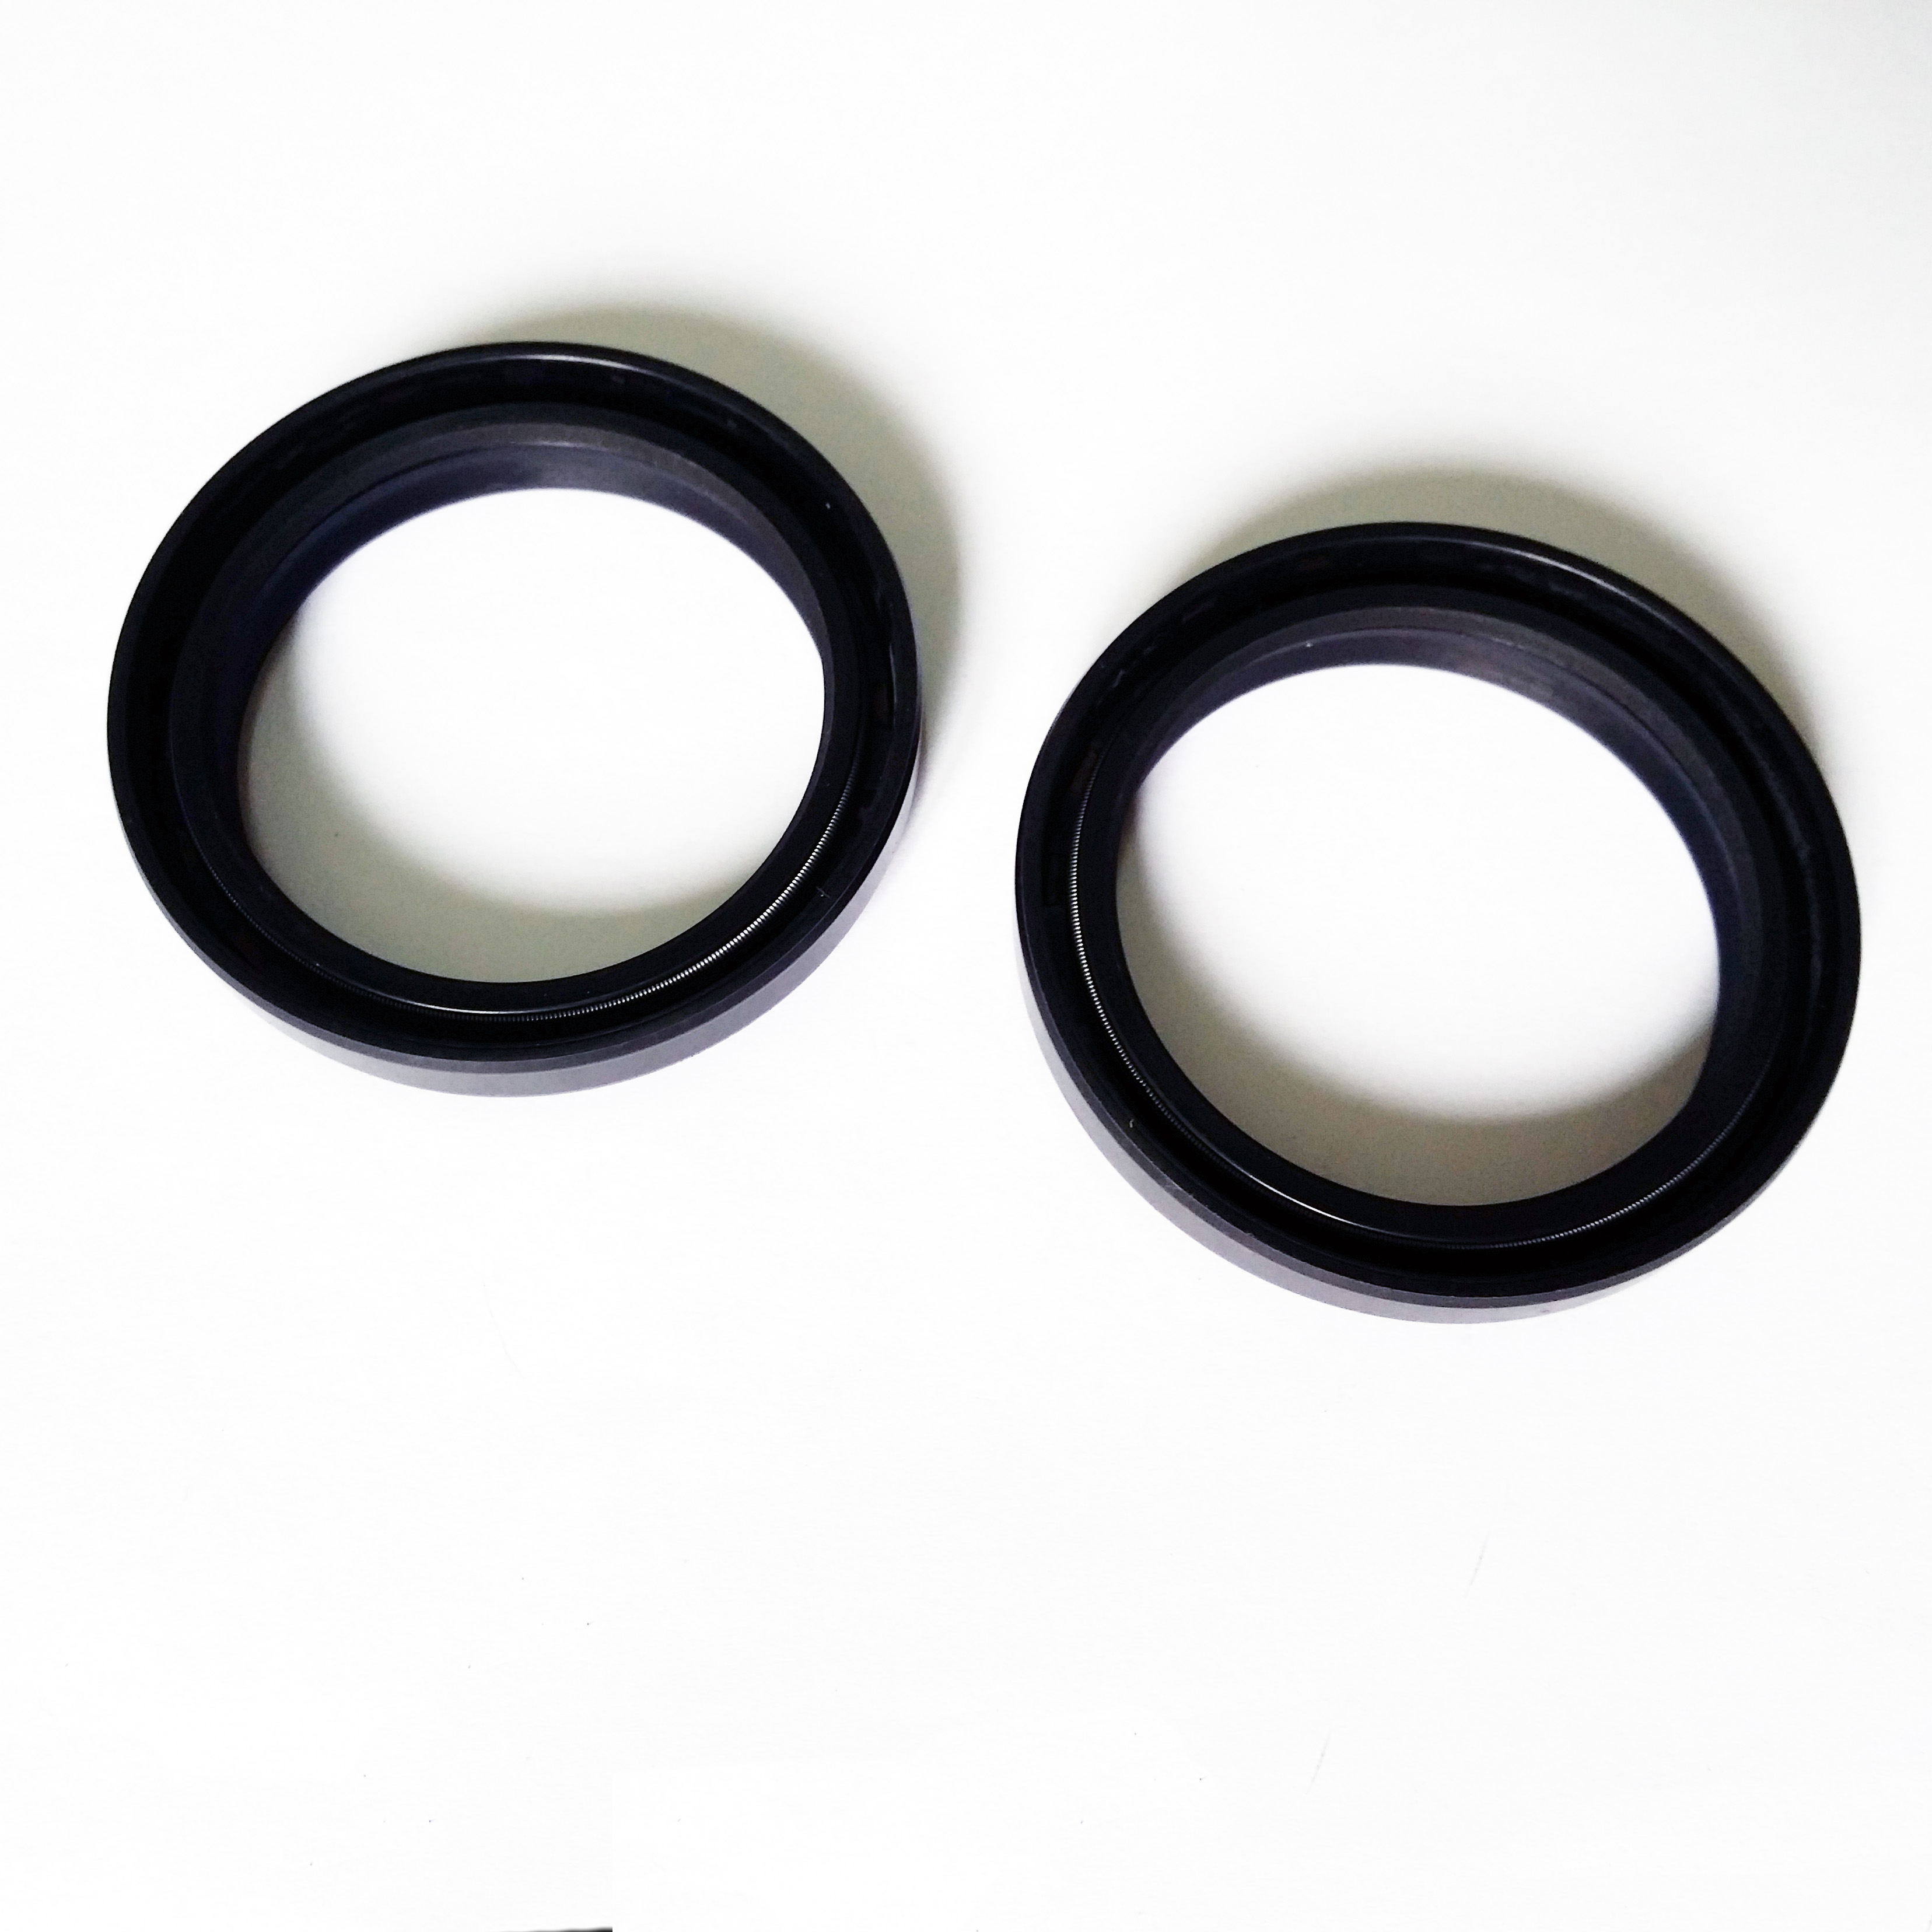 K-Tech Aprilia RXV550   2007-2009 NOK Front Fork Oil Seals 50x63x11mm